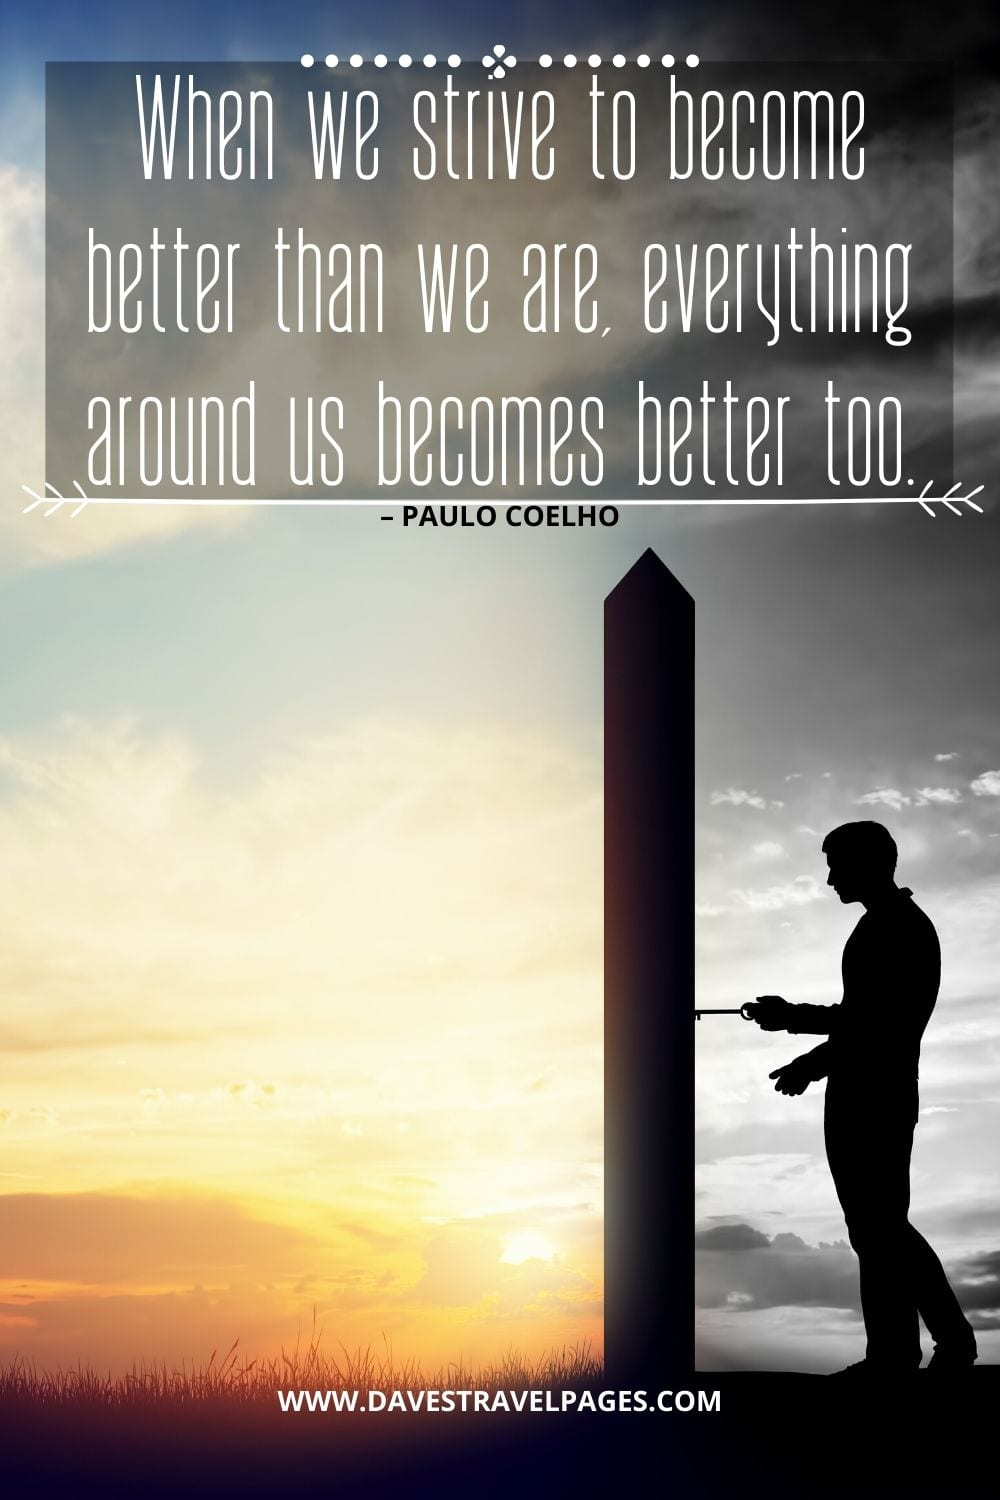 """When we strive to become better than we are, everything around us becomes better too."" – Paulo Coelho Inspirational Quote"